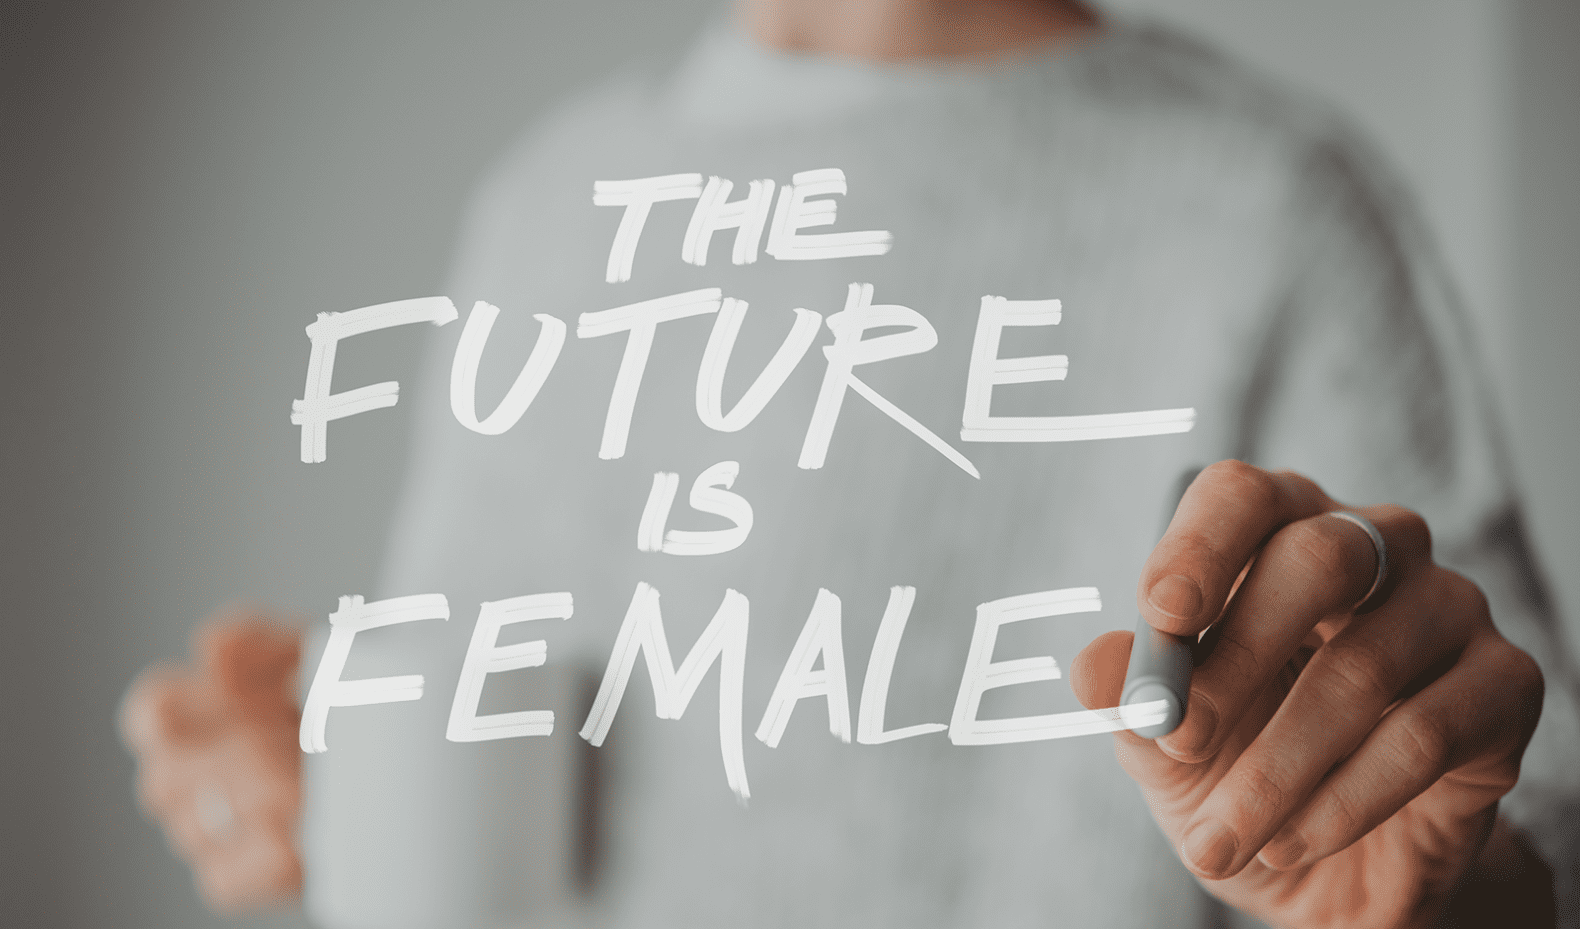 GENDER EQUALITY AND THE UNTAPPED POTENTIAL TO TACKLE THE CLIMATE CRISIS